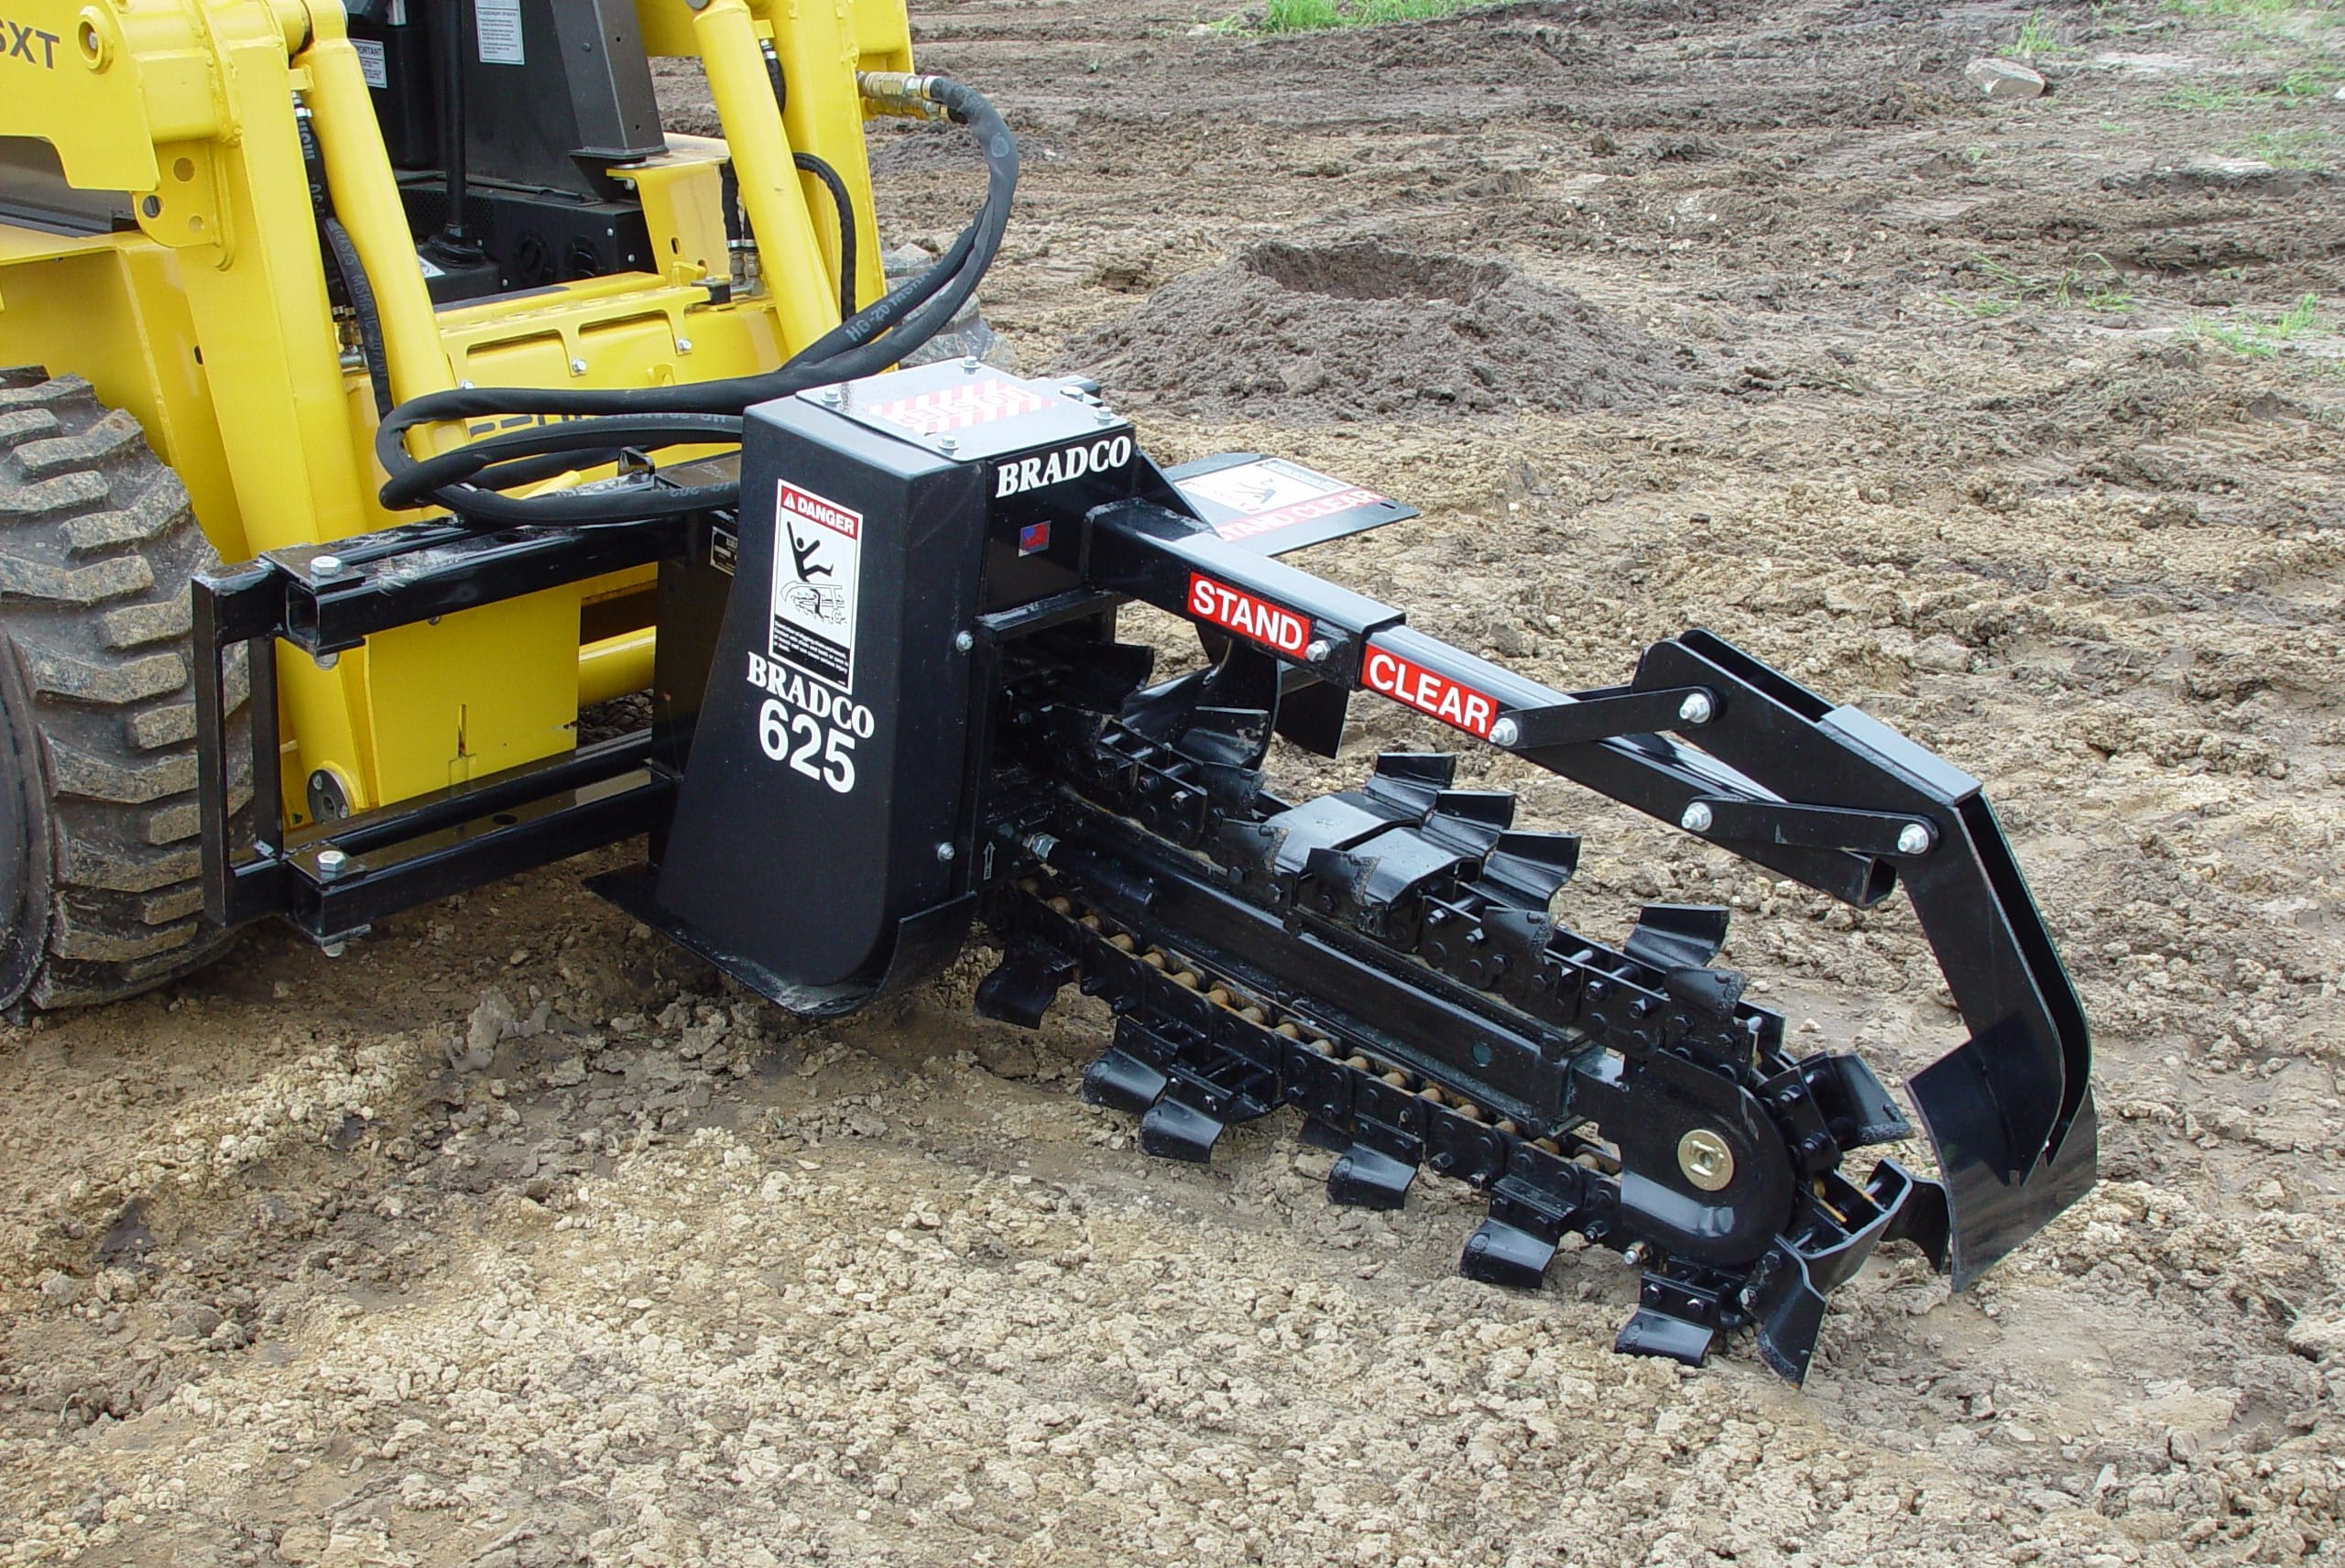 Bradco Model 625 Skid Steer Trencher Attachment